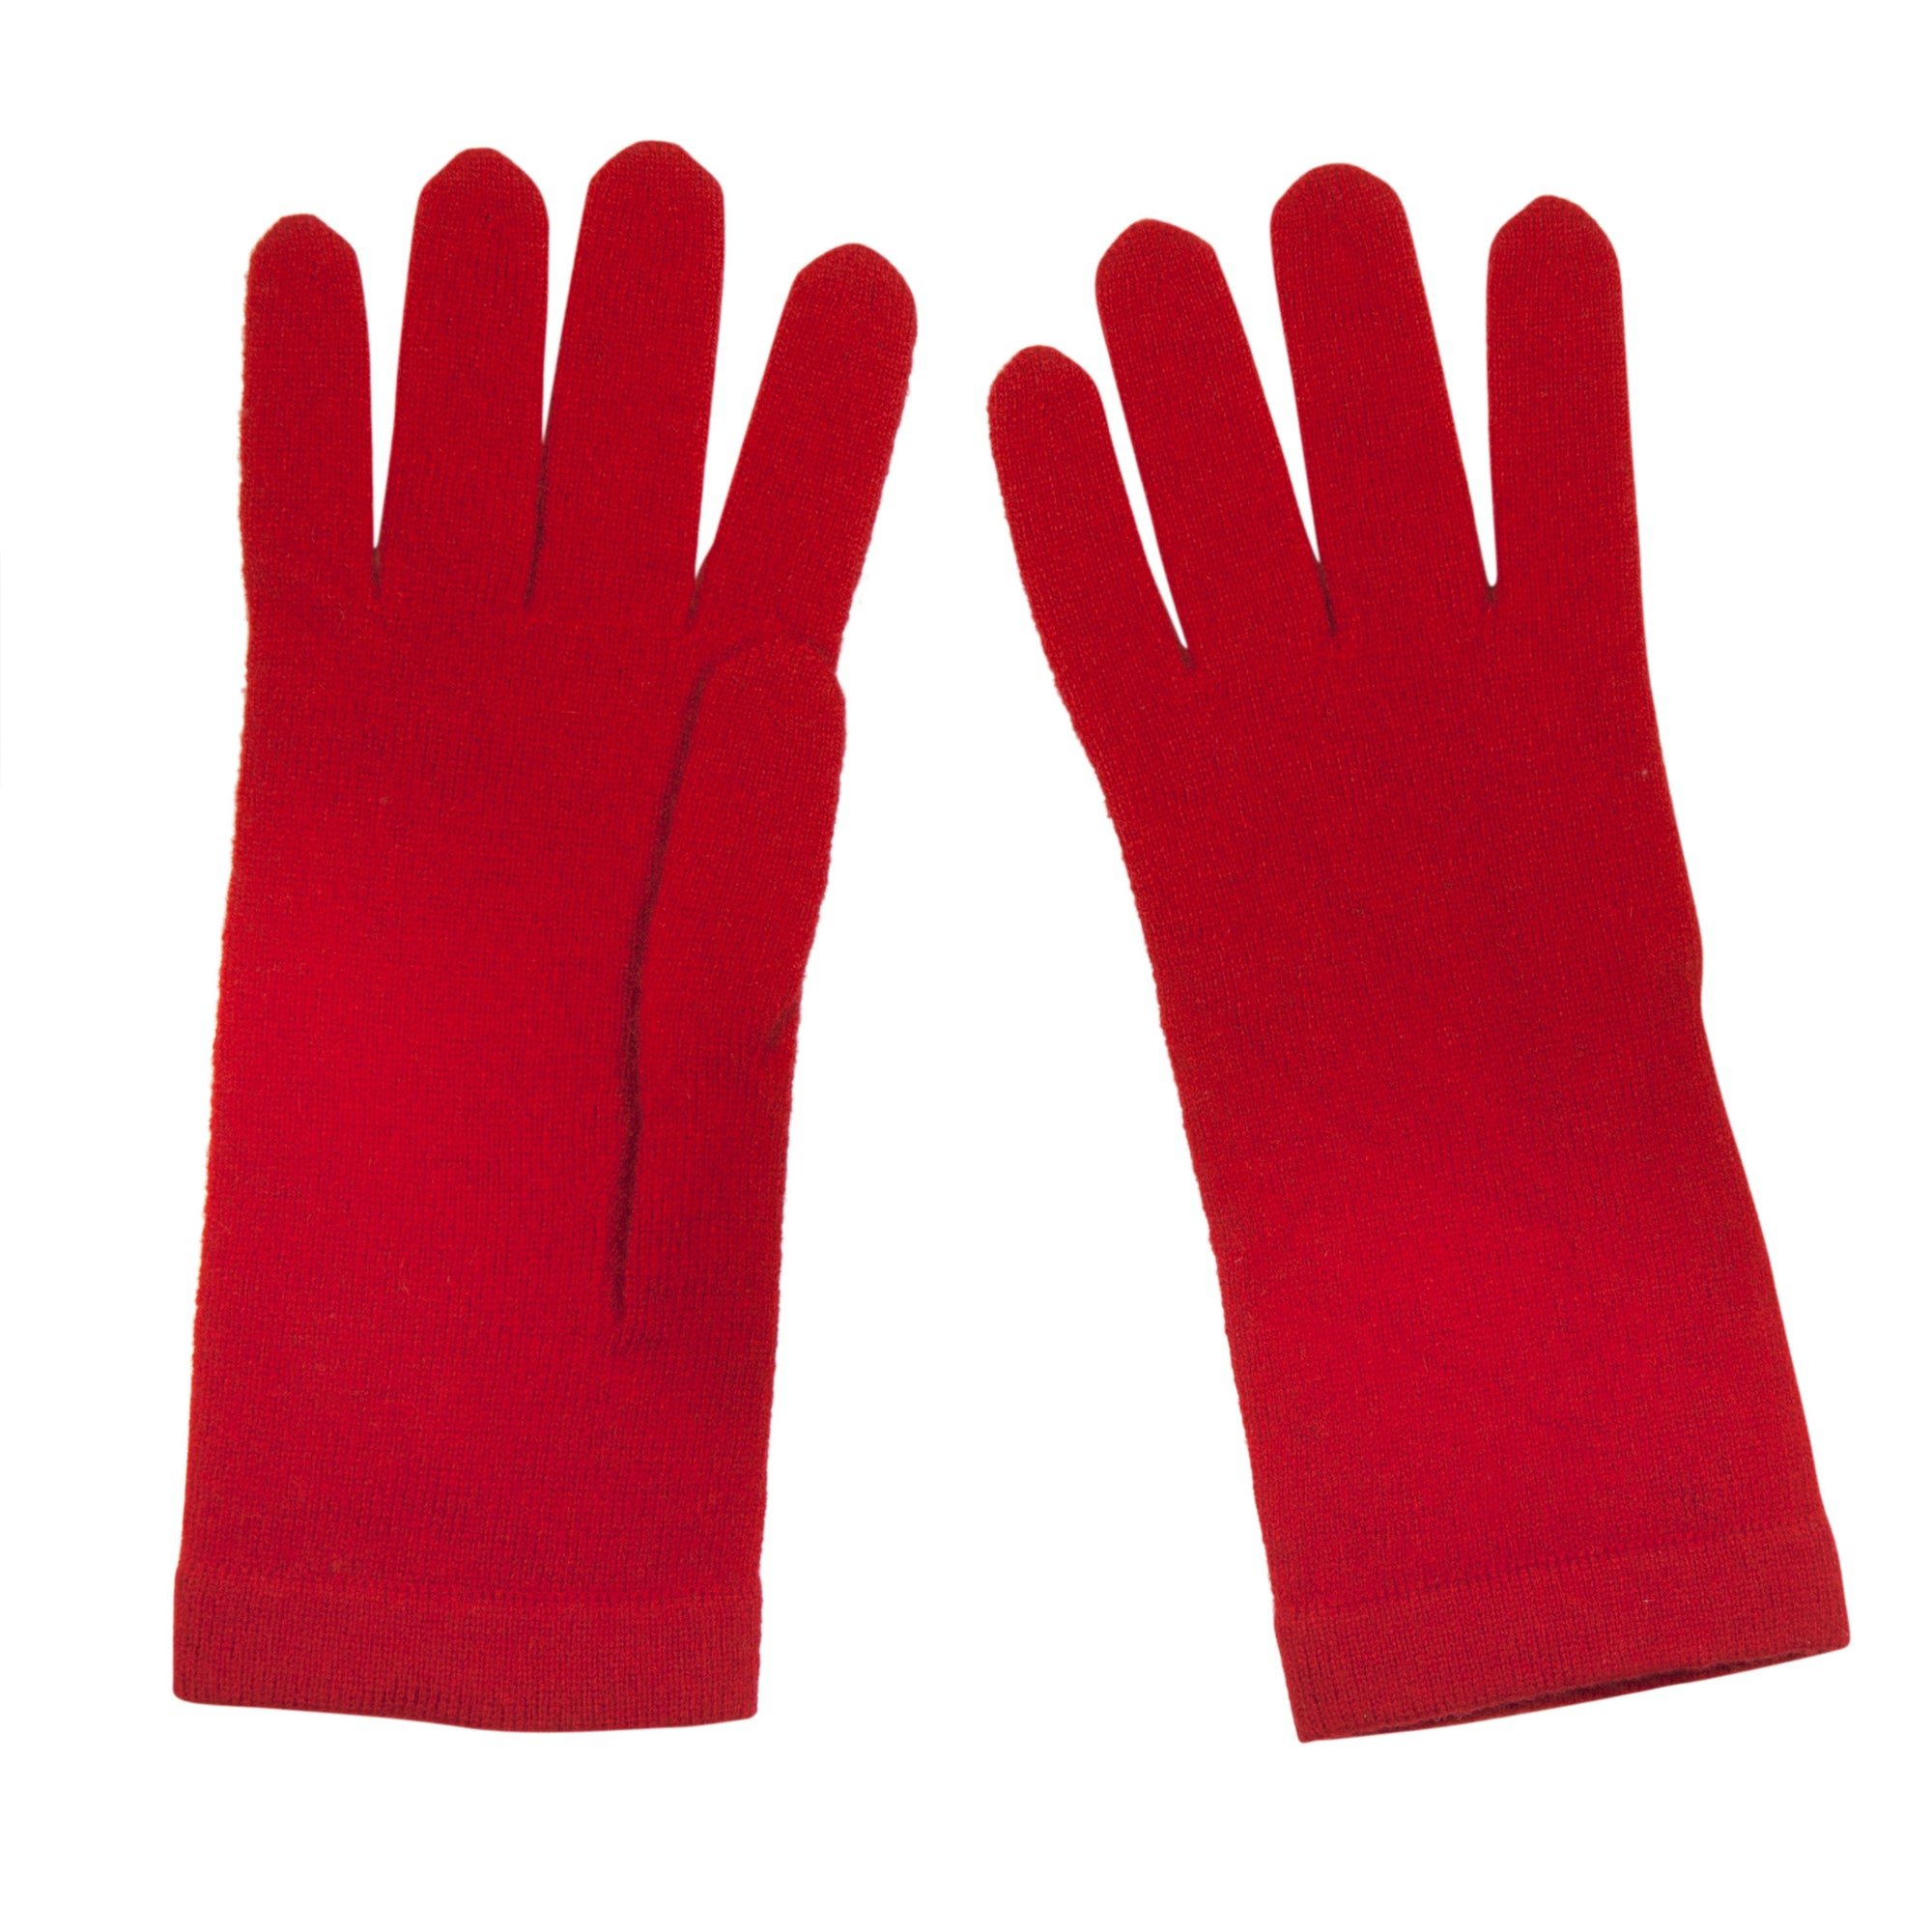 Tomato Red Ladies Cashmere Gloves | buy now at The Cashmere Choice London